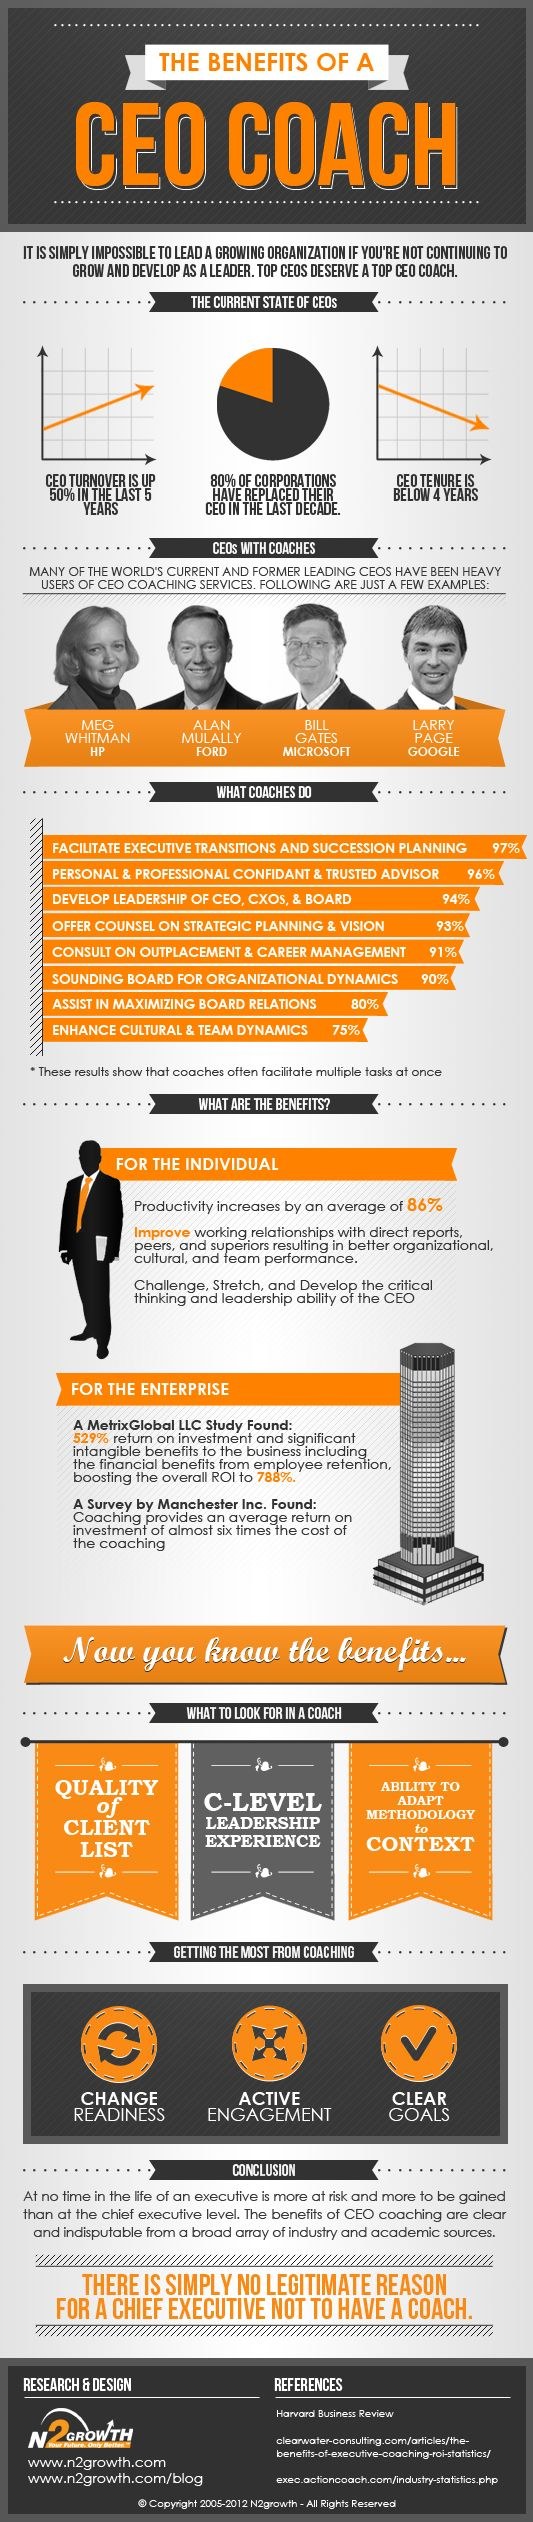 Are CEO coaches worth the time and effort? Take a look at this infographic by our friends at N2Growth. And for business leaders who think executive coaching is a waste of money, check out the numbers on the average return of coaching investment. Really, what do you have to lose? More importantly, what do you have to gain?